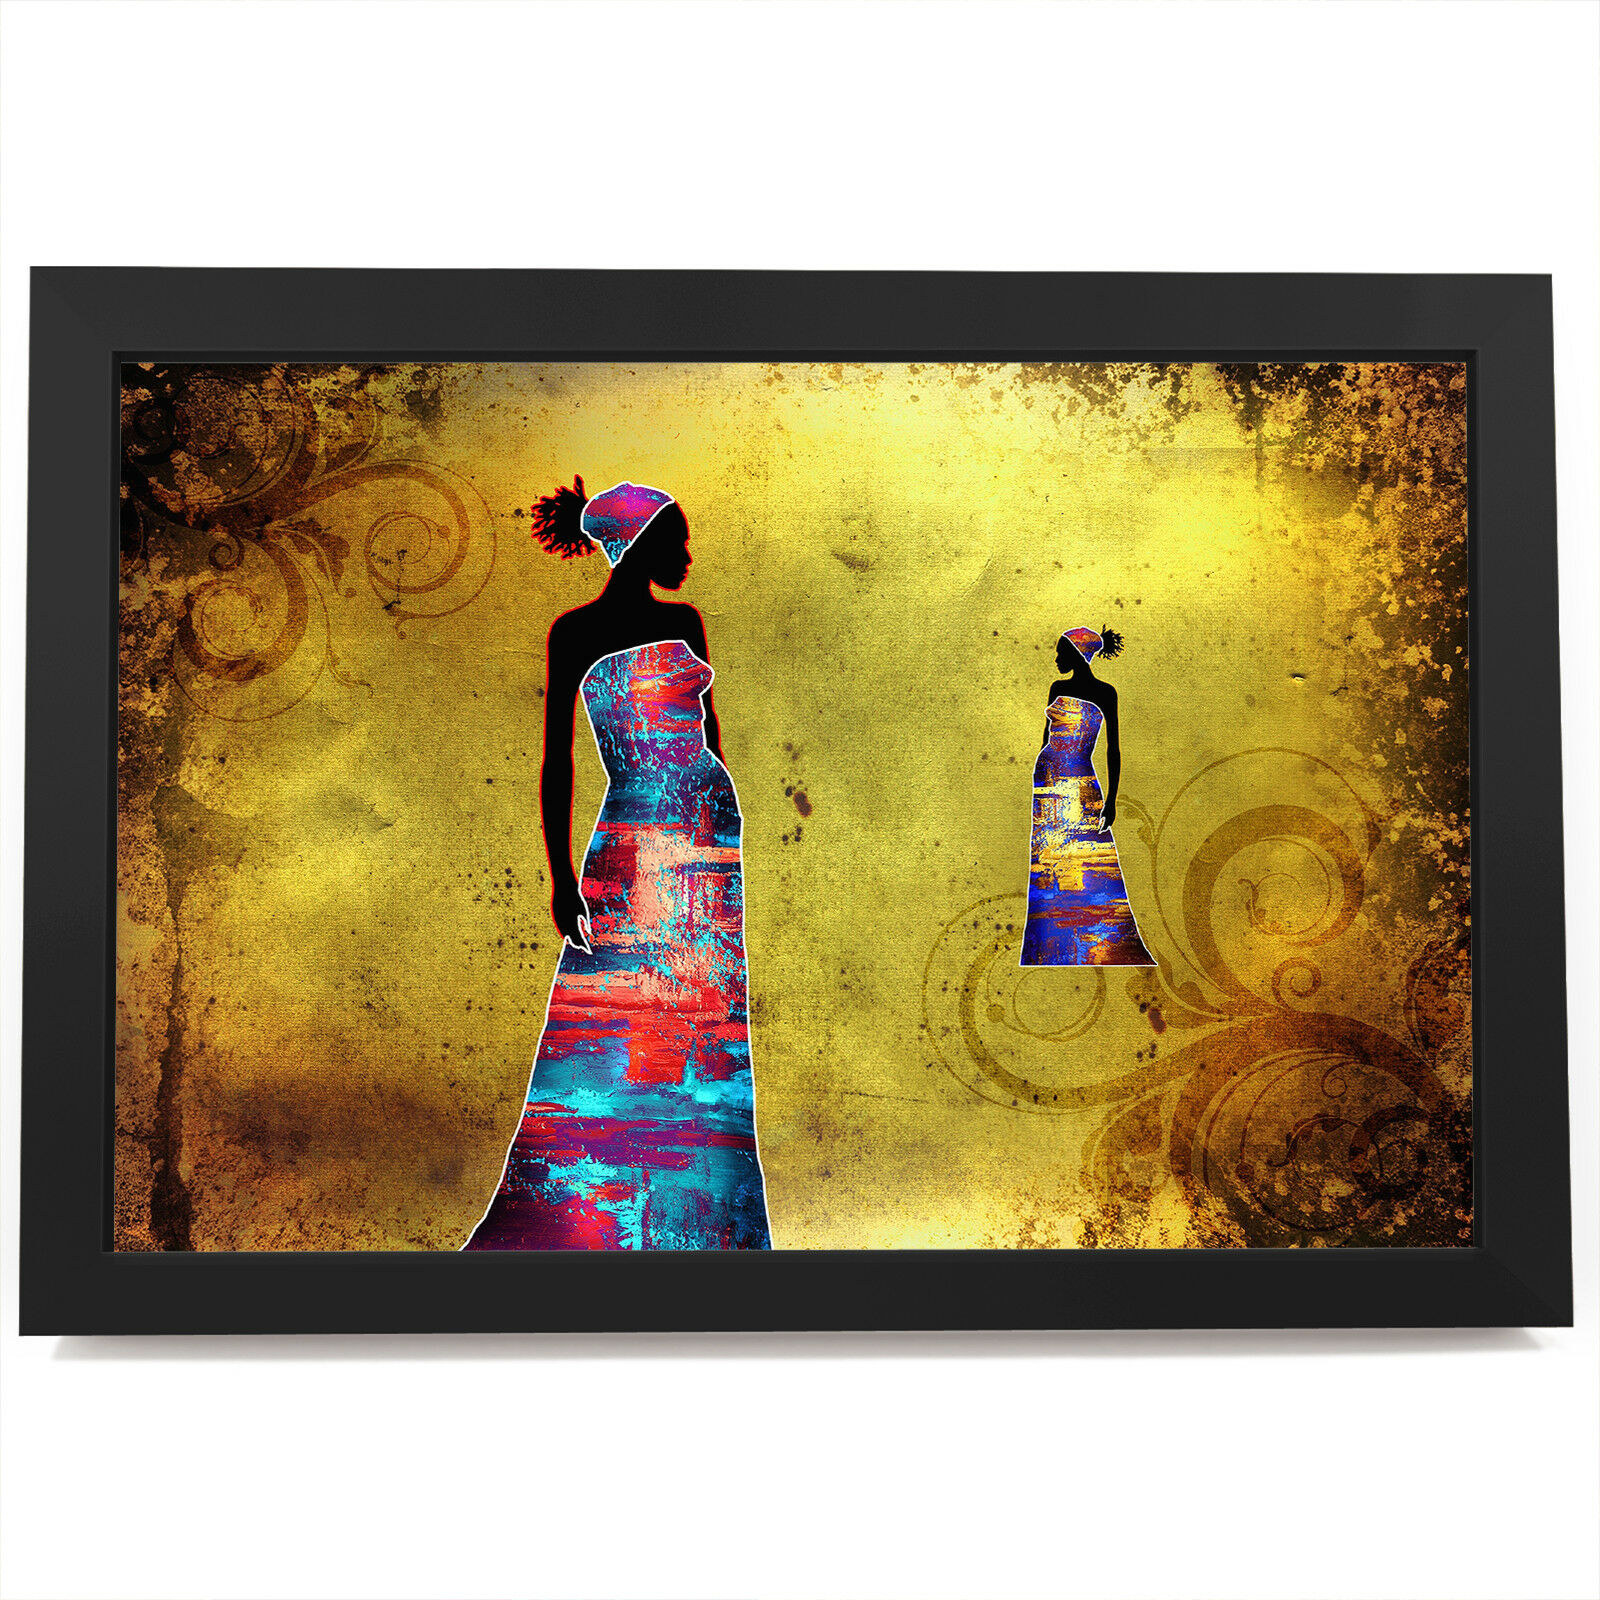 AB771 Retro Colourful Cool Modern Abstract Framed Wall Art Large Picture Prints